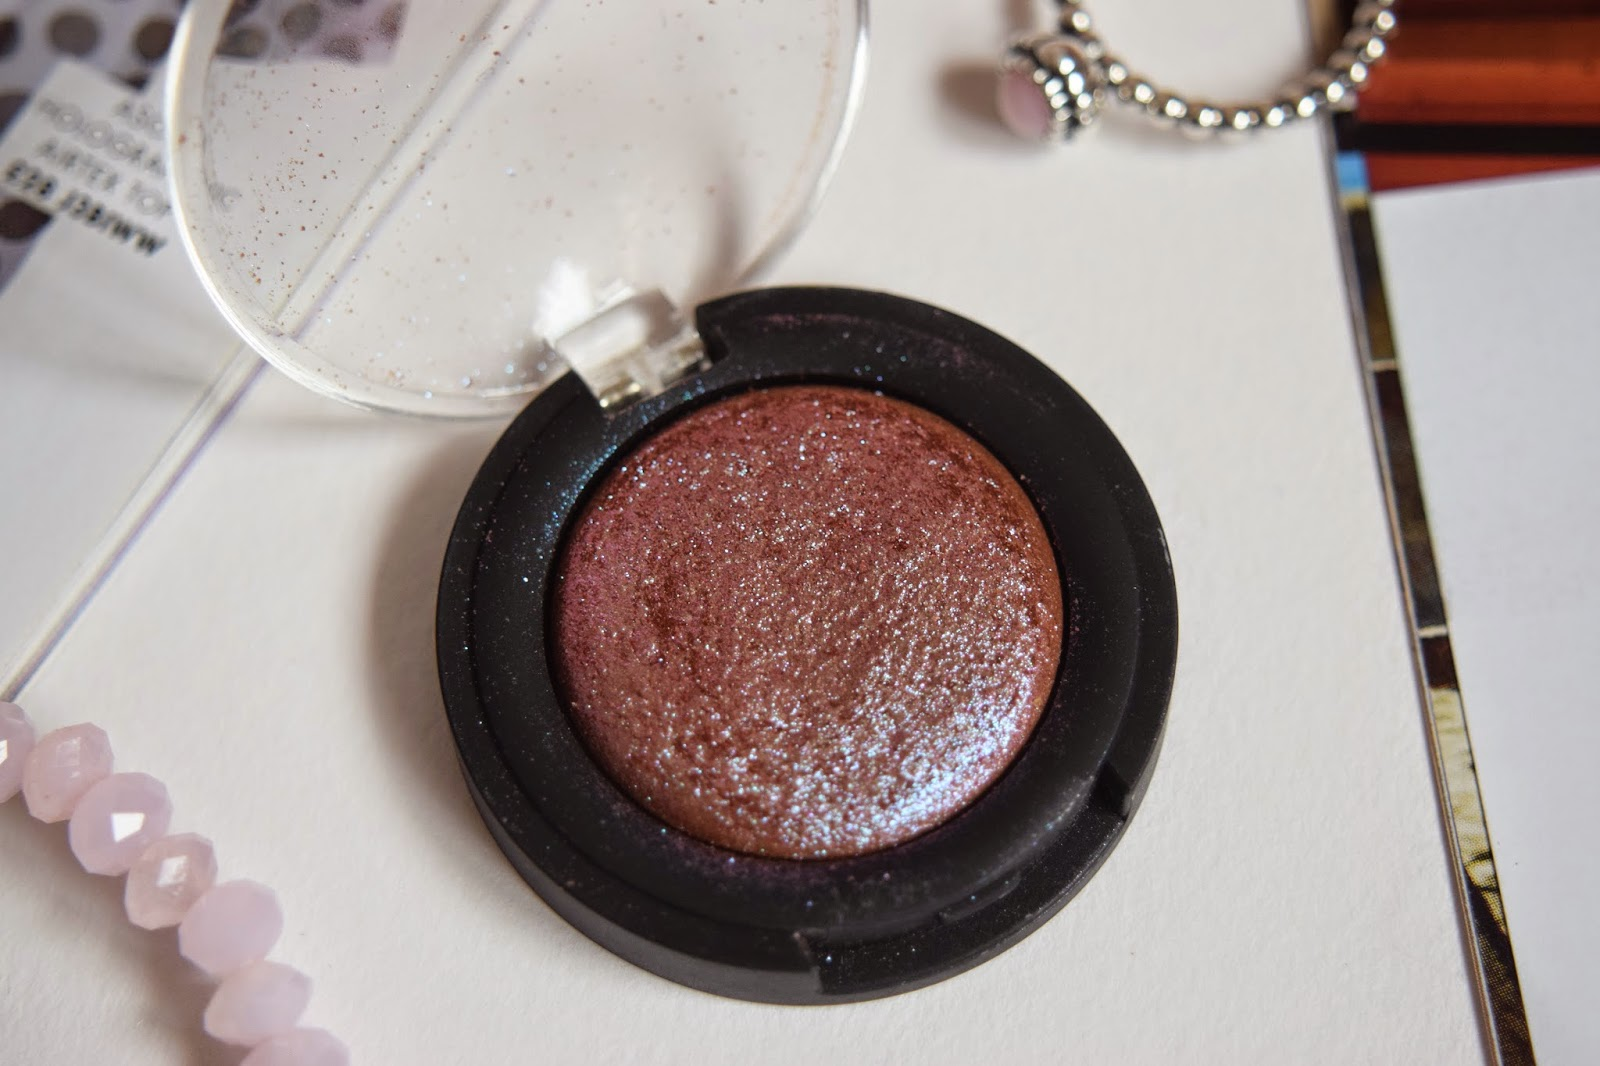 A CLOSE UP SHOT OF THE TOPSHOP EYESHADOW